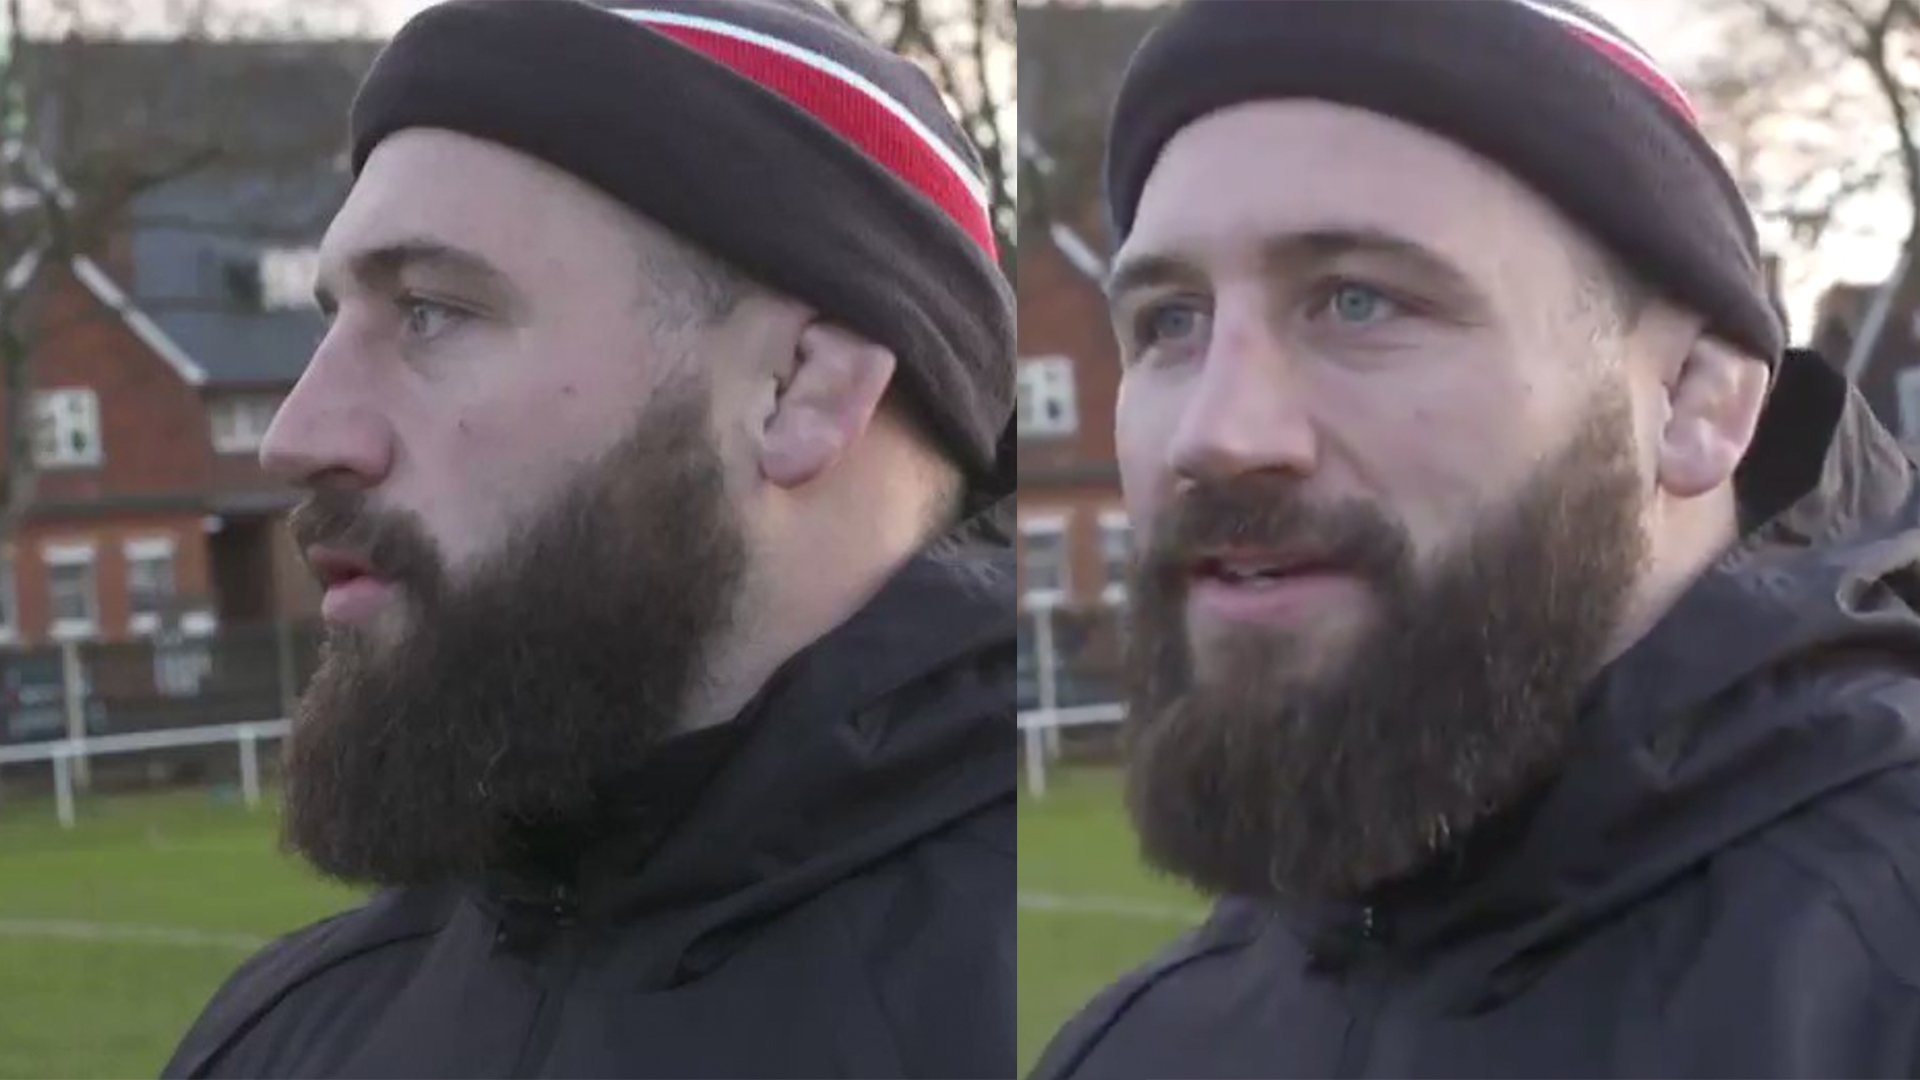 Joe Marler has just gone full weirdo and someone was there to film it